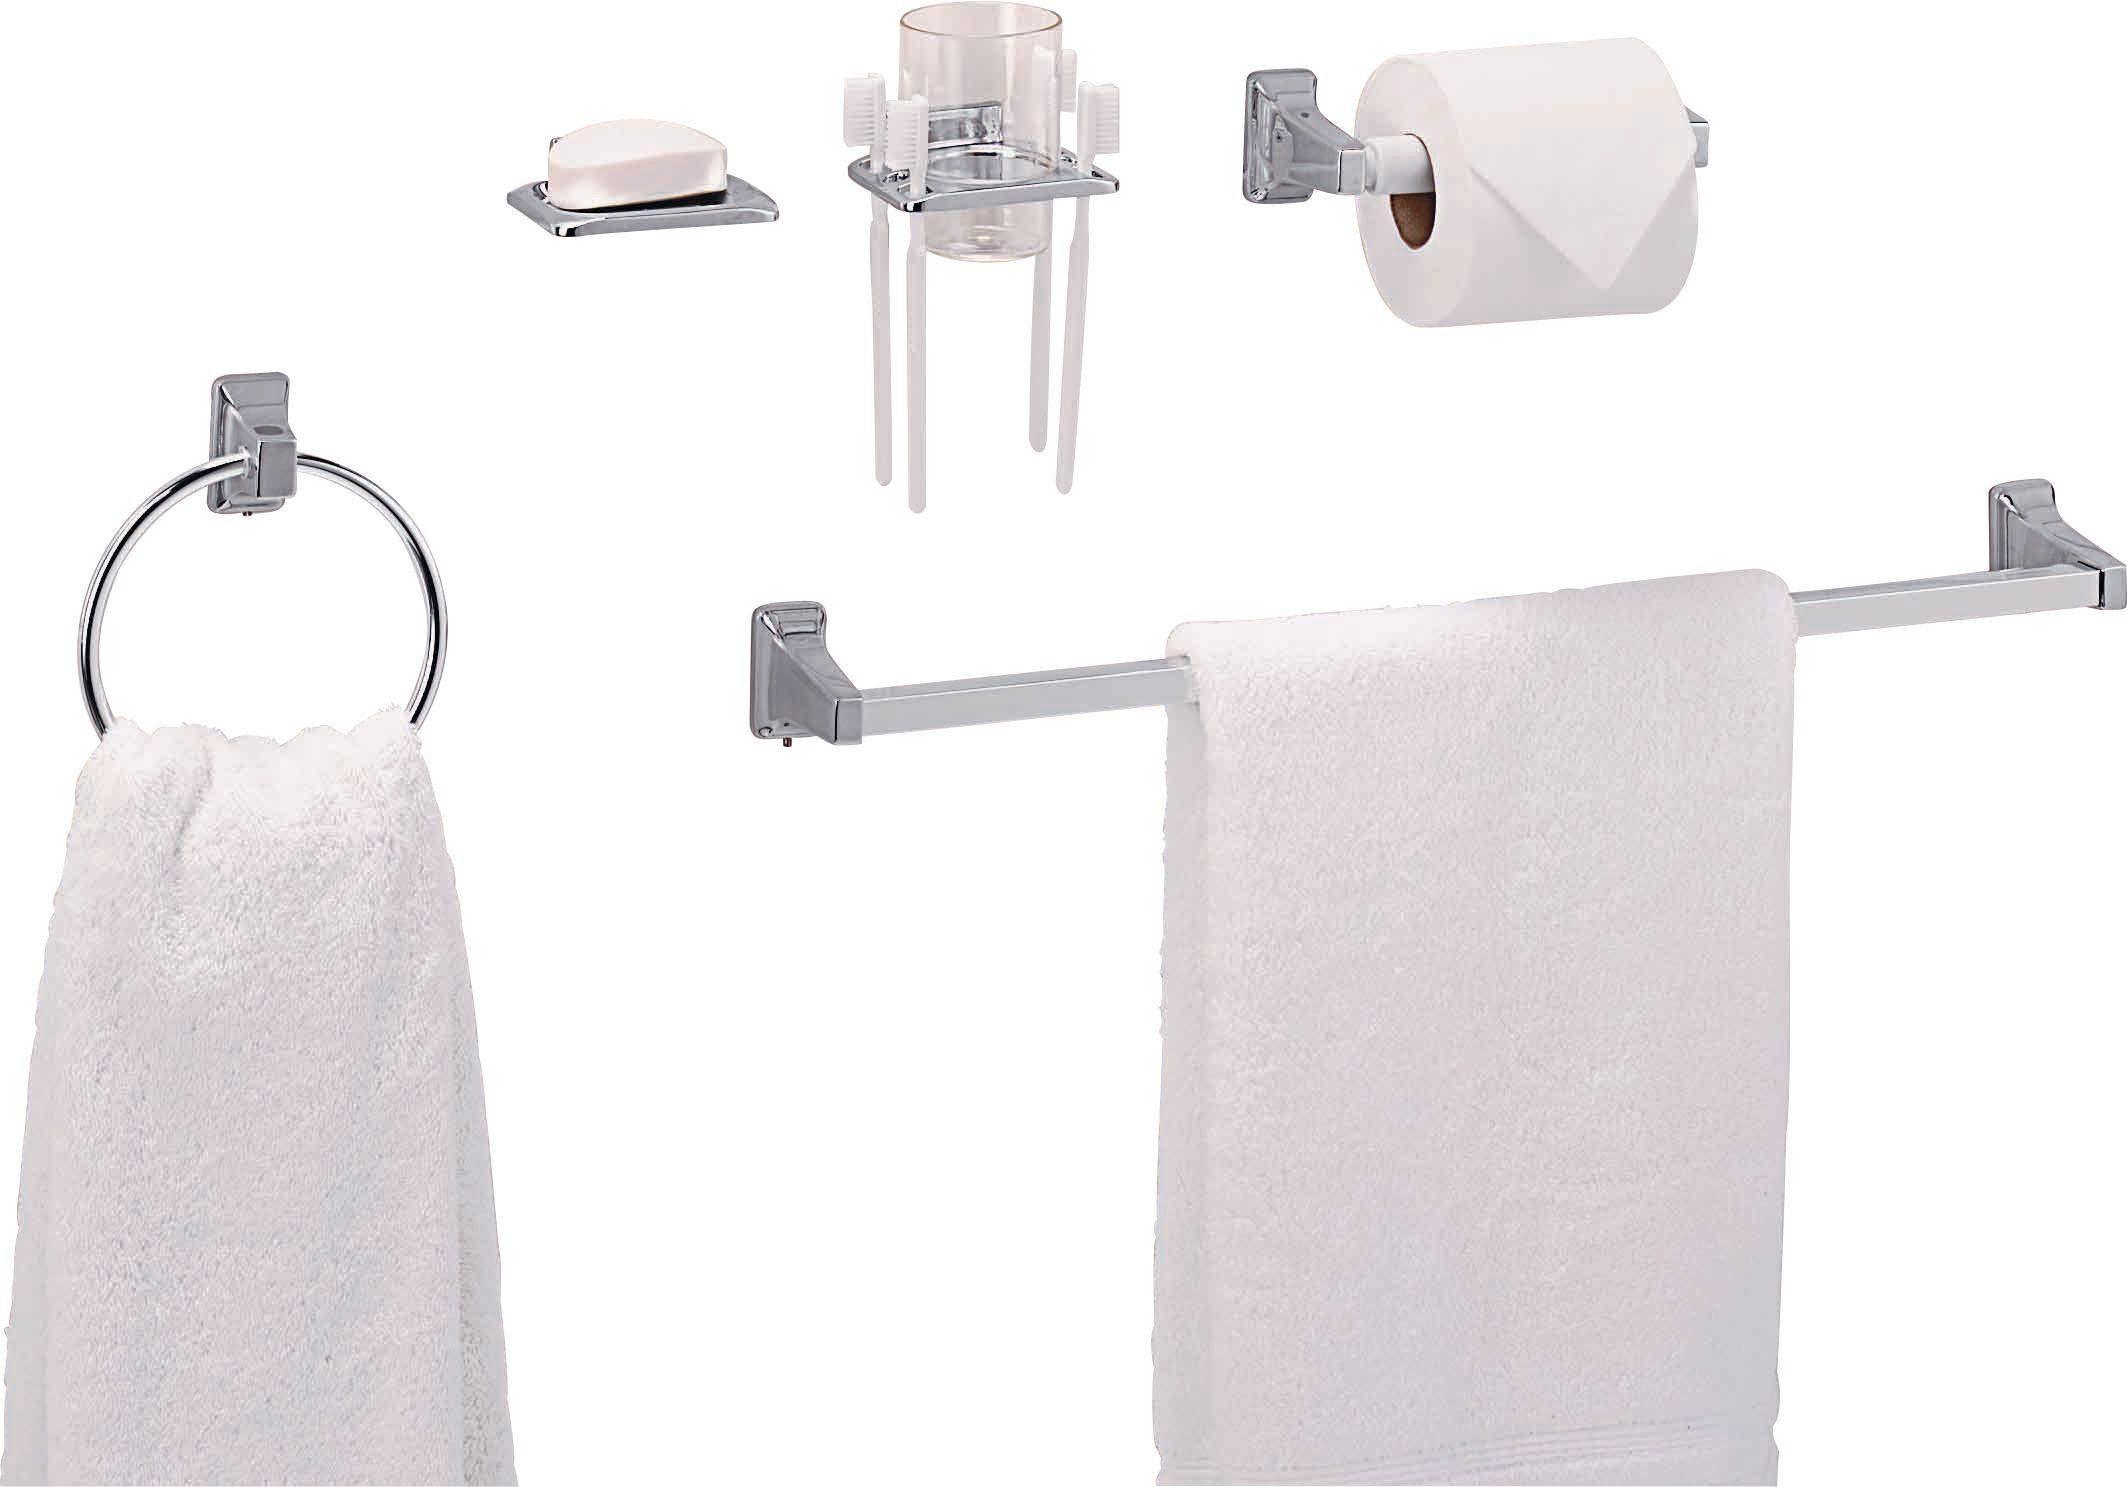 Bathroom Accessories Fittings buy home 5 piece bathroom accessory set - chrome finish at argos